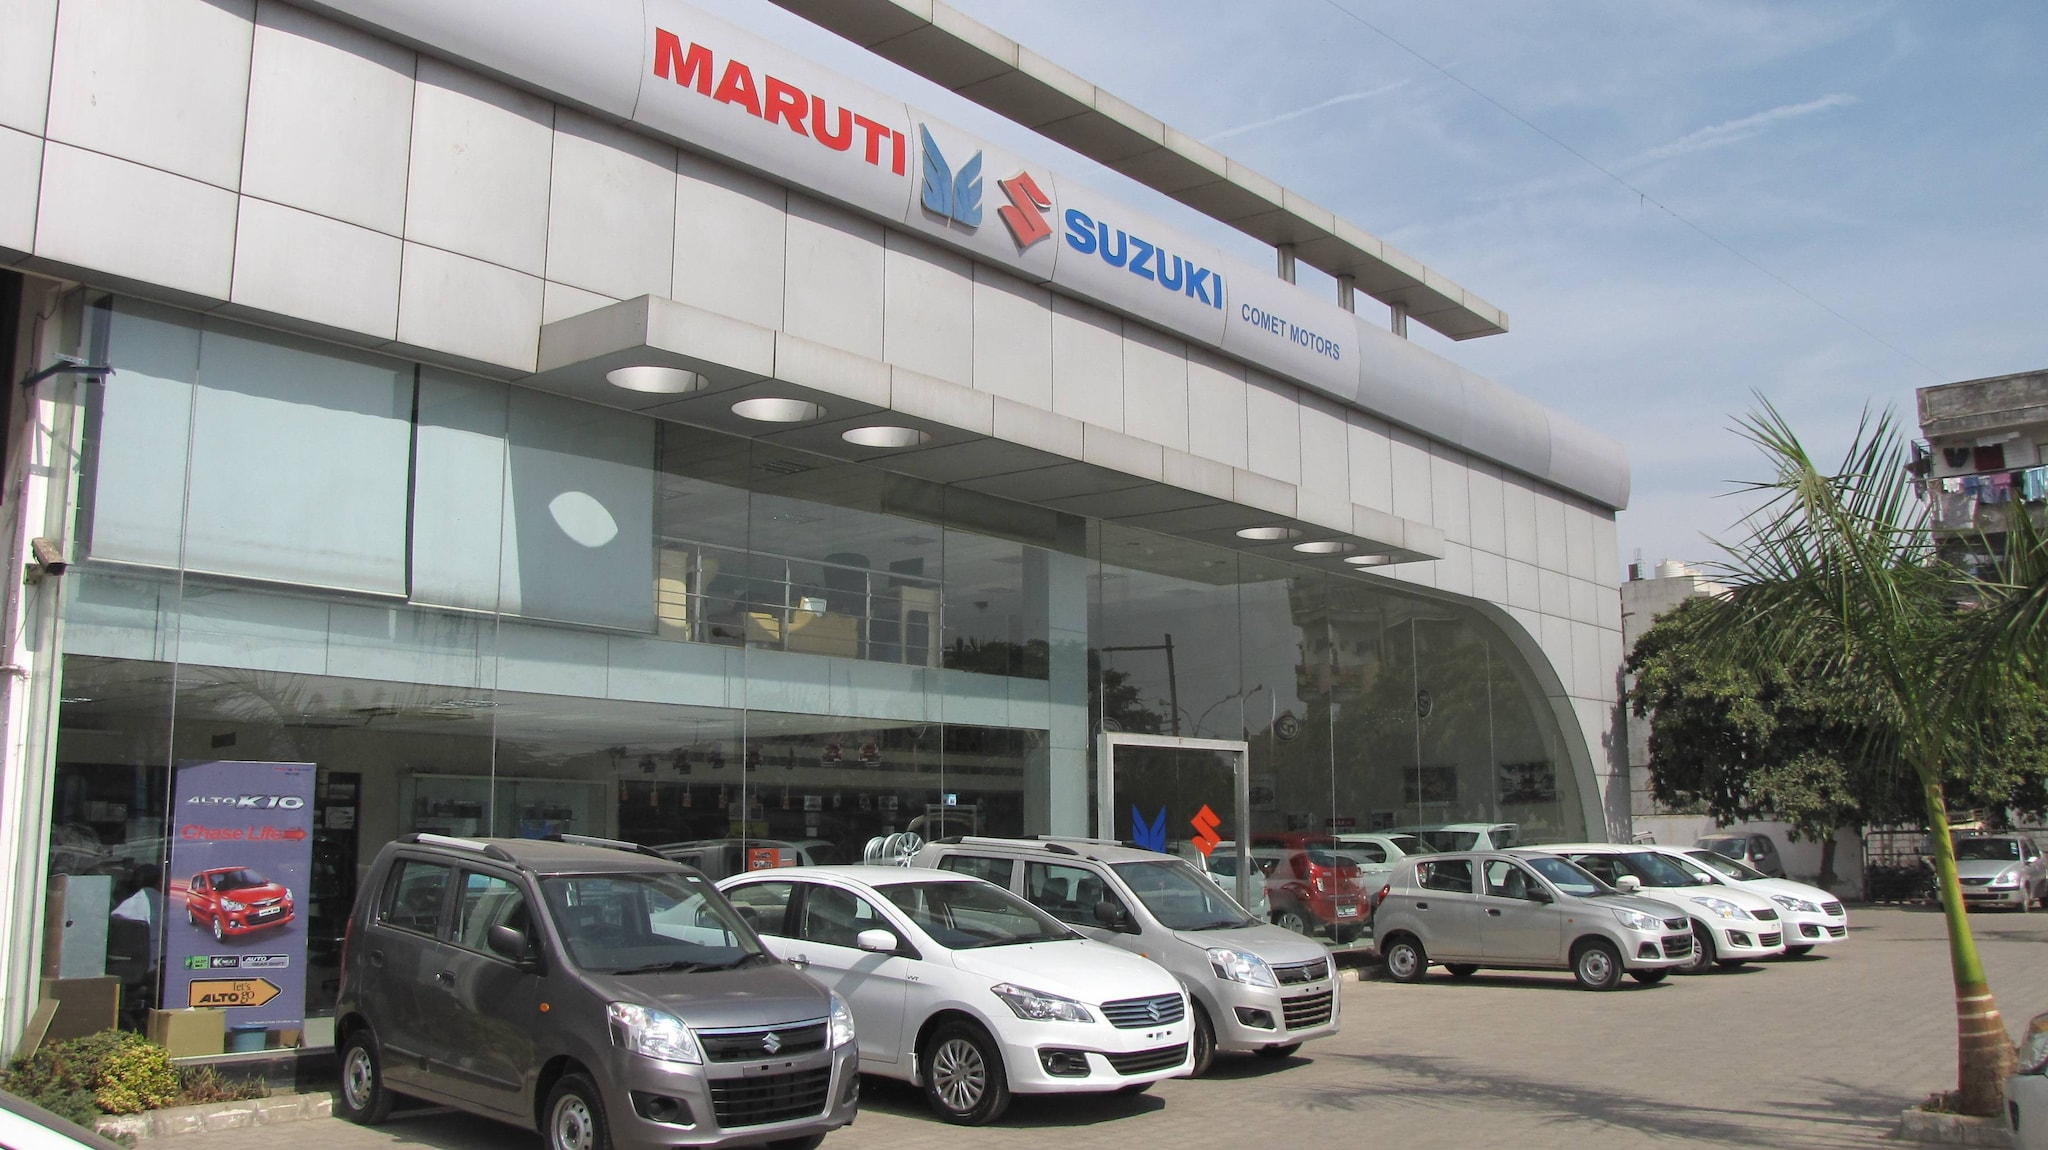 Top 30 Maruti Suzuki Car Dealers in Surat - Best Maruti